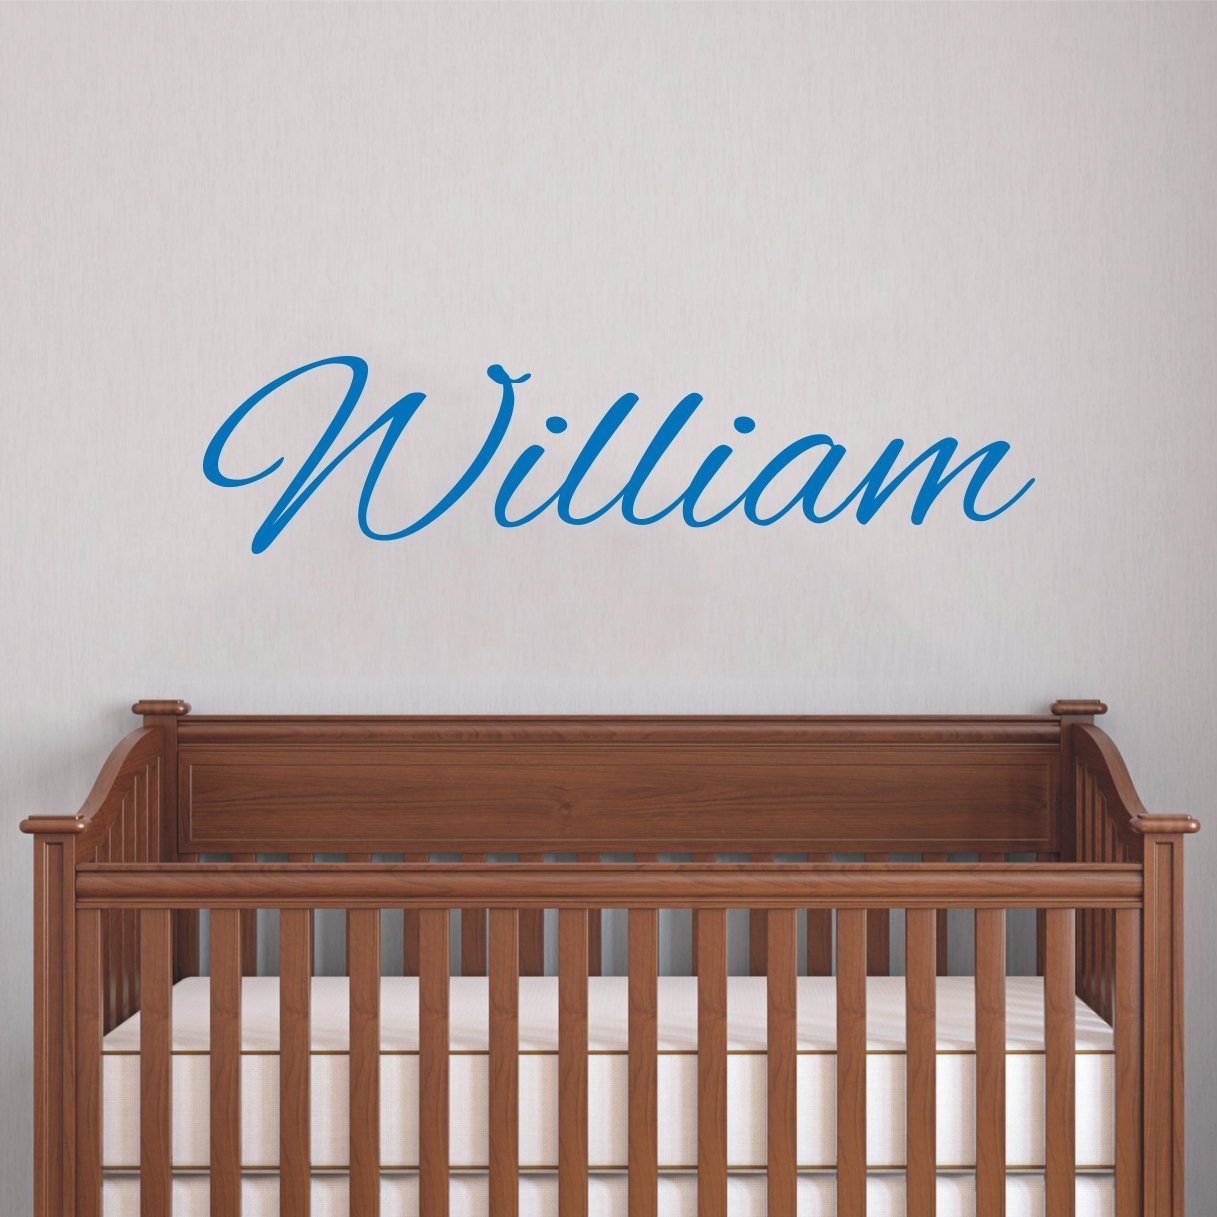 Personalized Name Wall Decal Baby Nursery Boys Decals